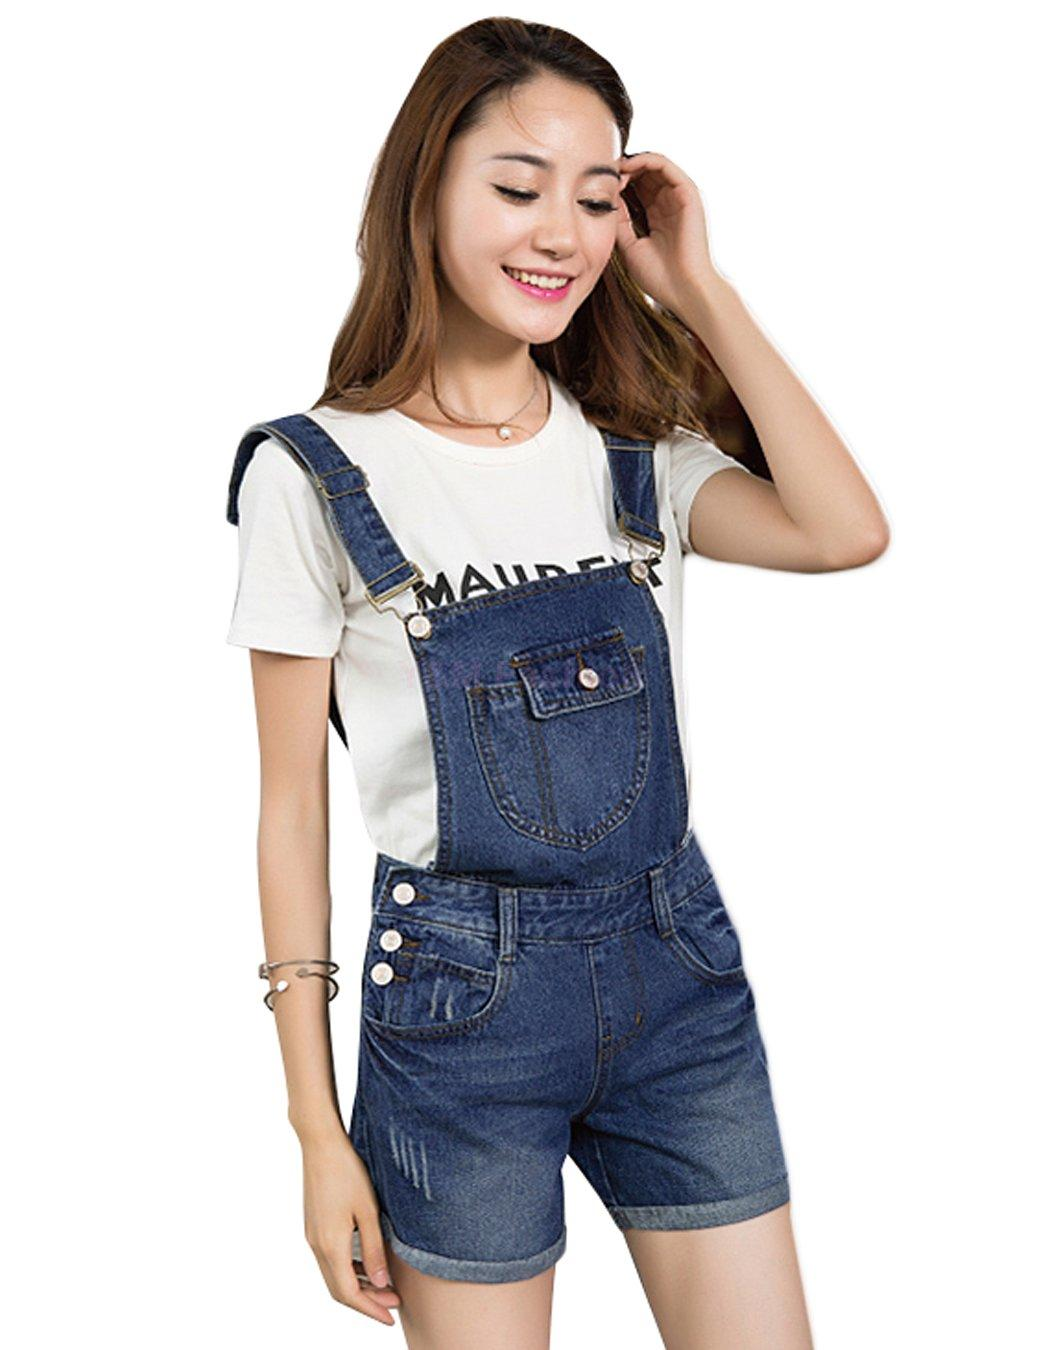 Dayne Seamed Denim Jumpsuit Long sleeve jumpsuits make for the perfect winter outfits, while short sleeve and sleeveless jumpsuits are must-haves in summer. Whether your look is modern, glam or laid back, bebe has chic jumpsuits and rompers to